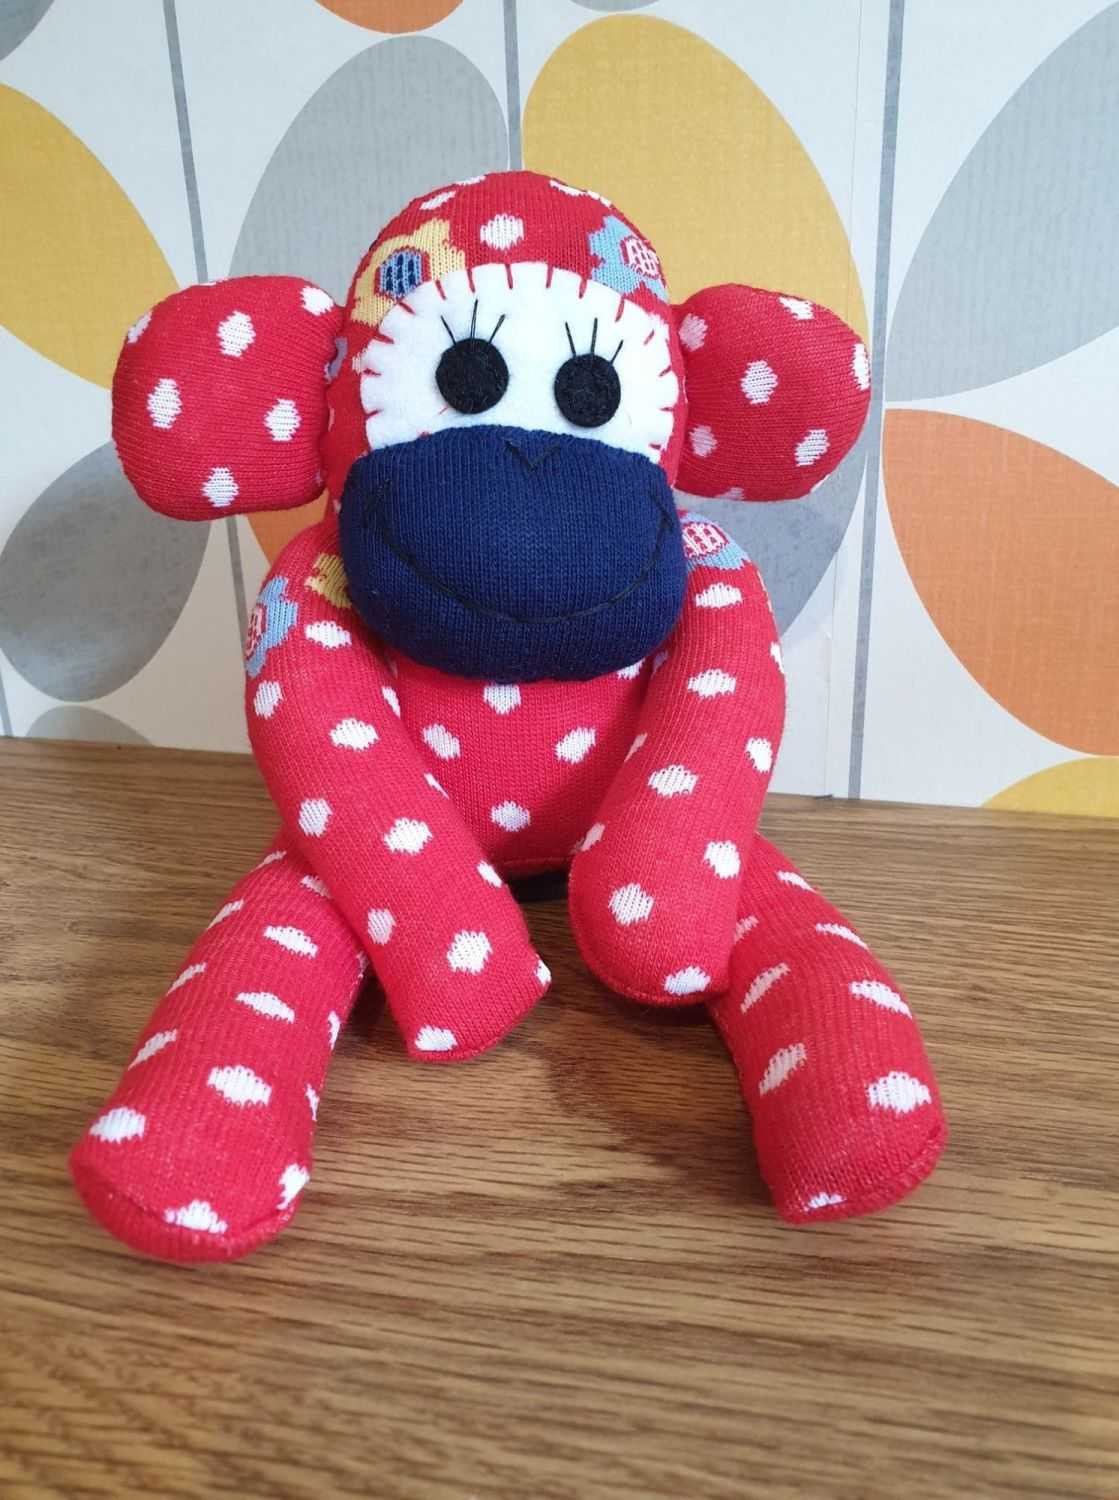 Red Sock Monkey with Spots and flowers